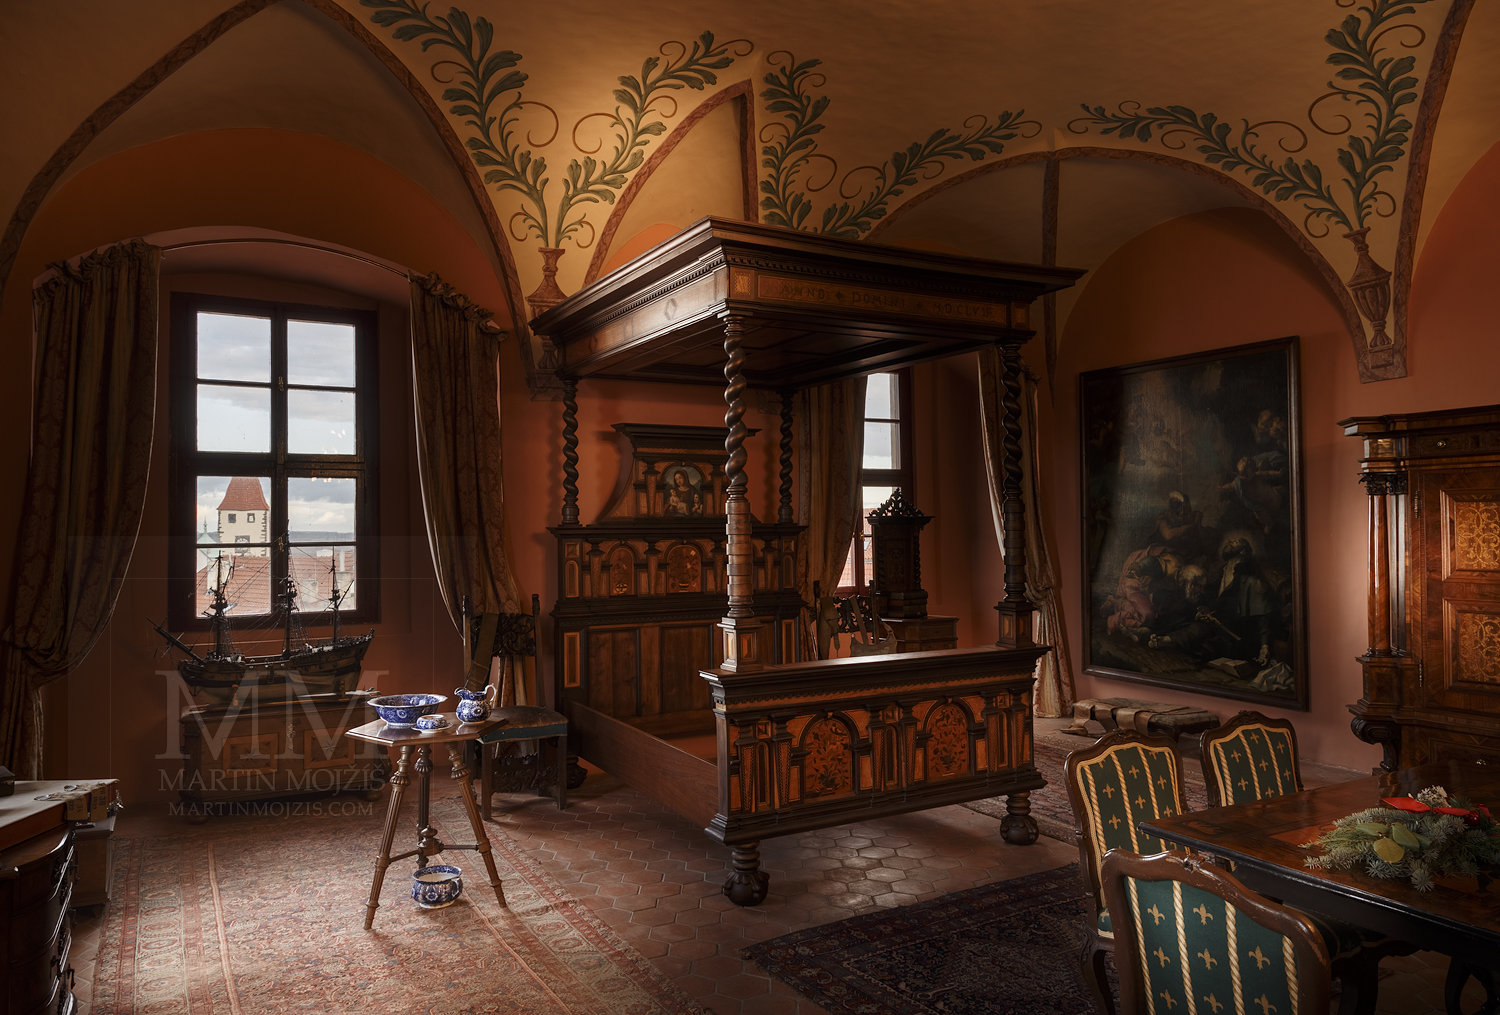 Chateau Melnik – large bedroom of Jiri Kristian. Professional photography of architecture - interiors.